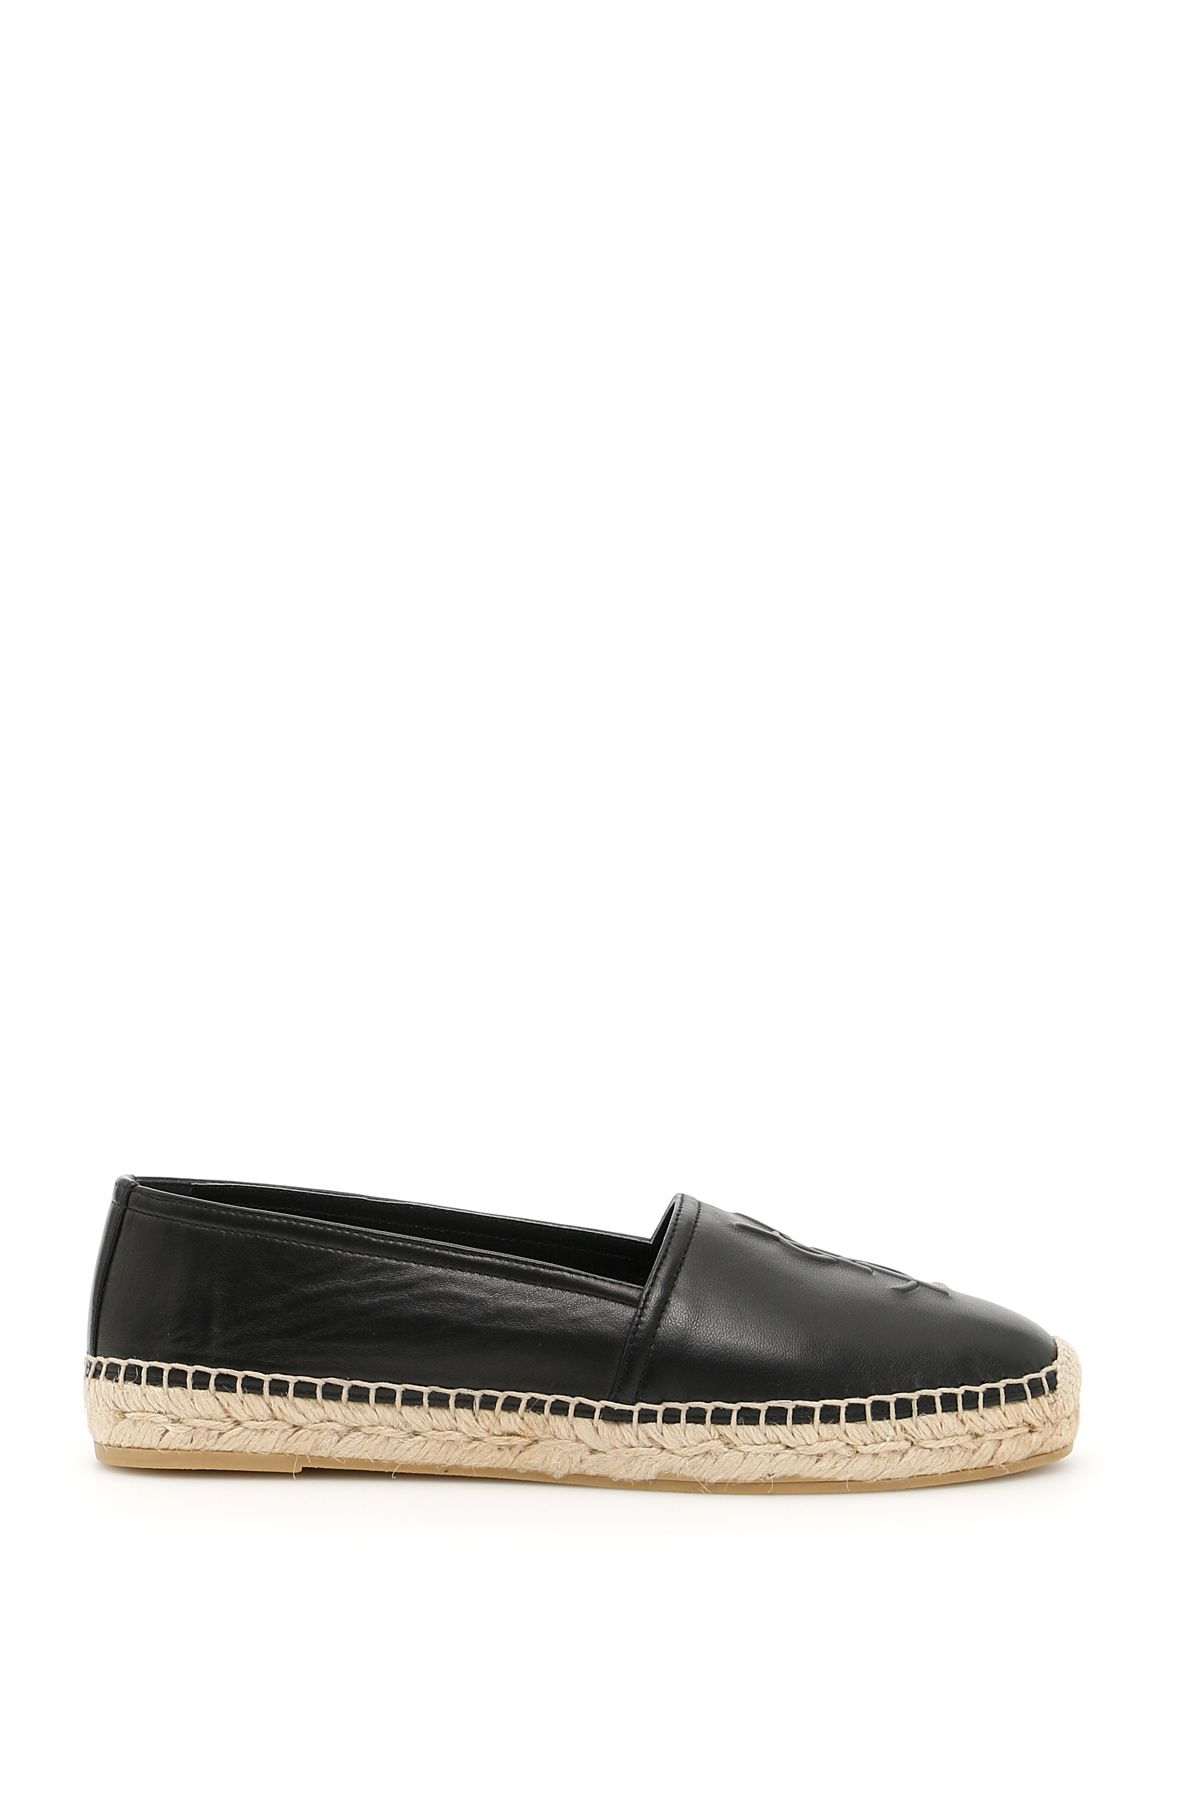 Outlet Pre Order logo embossed espadrilles - Black Saint Laurent Free Shipping Clearance Store Buy Cheap Latest Collections MThUX4g6